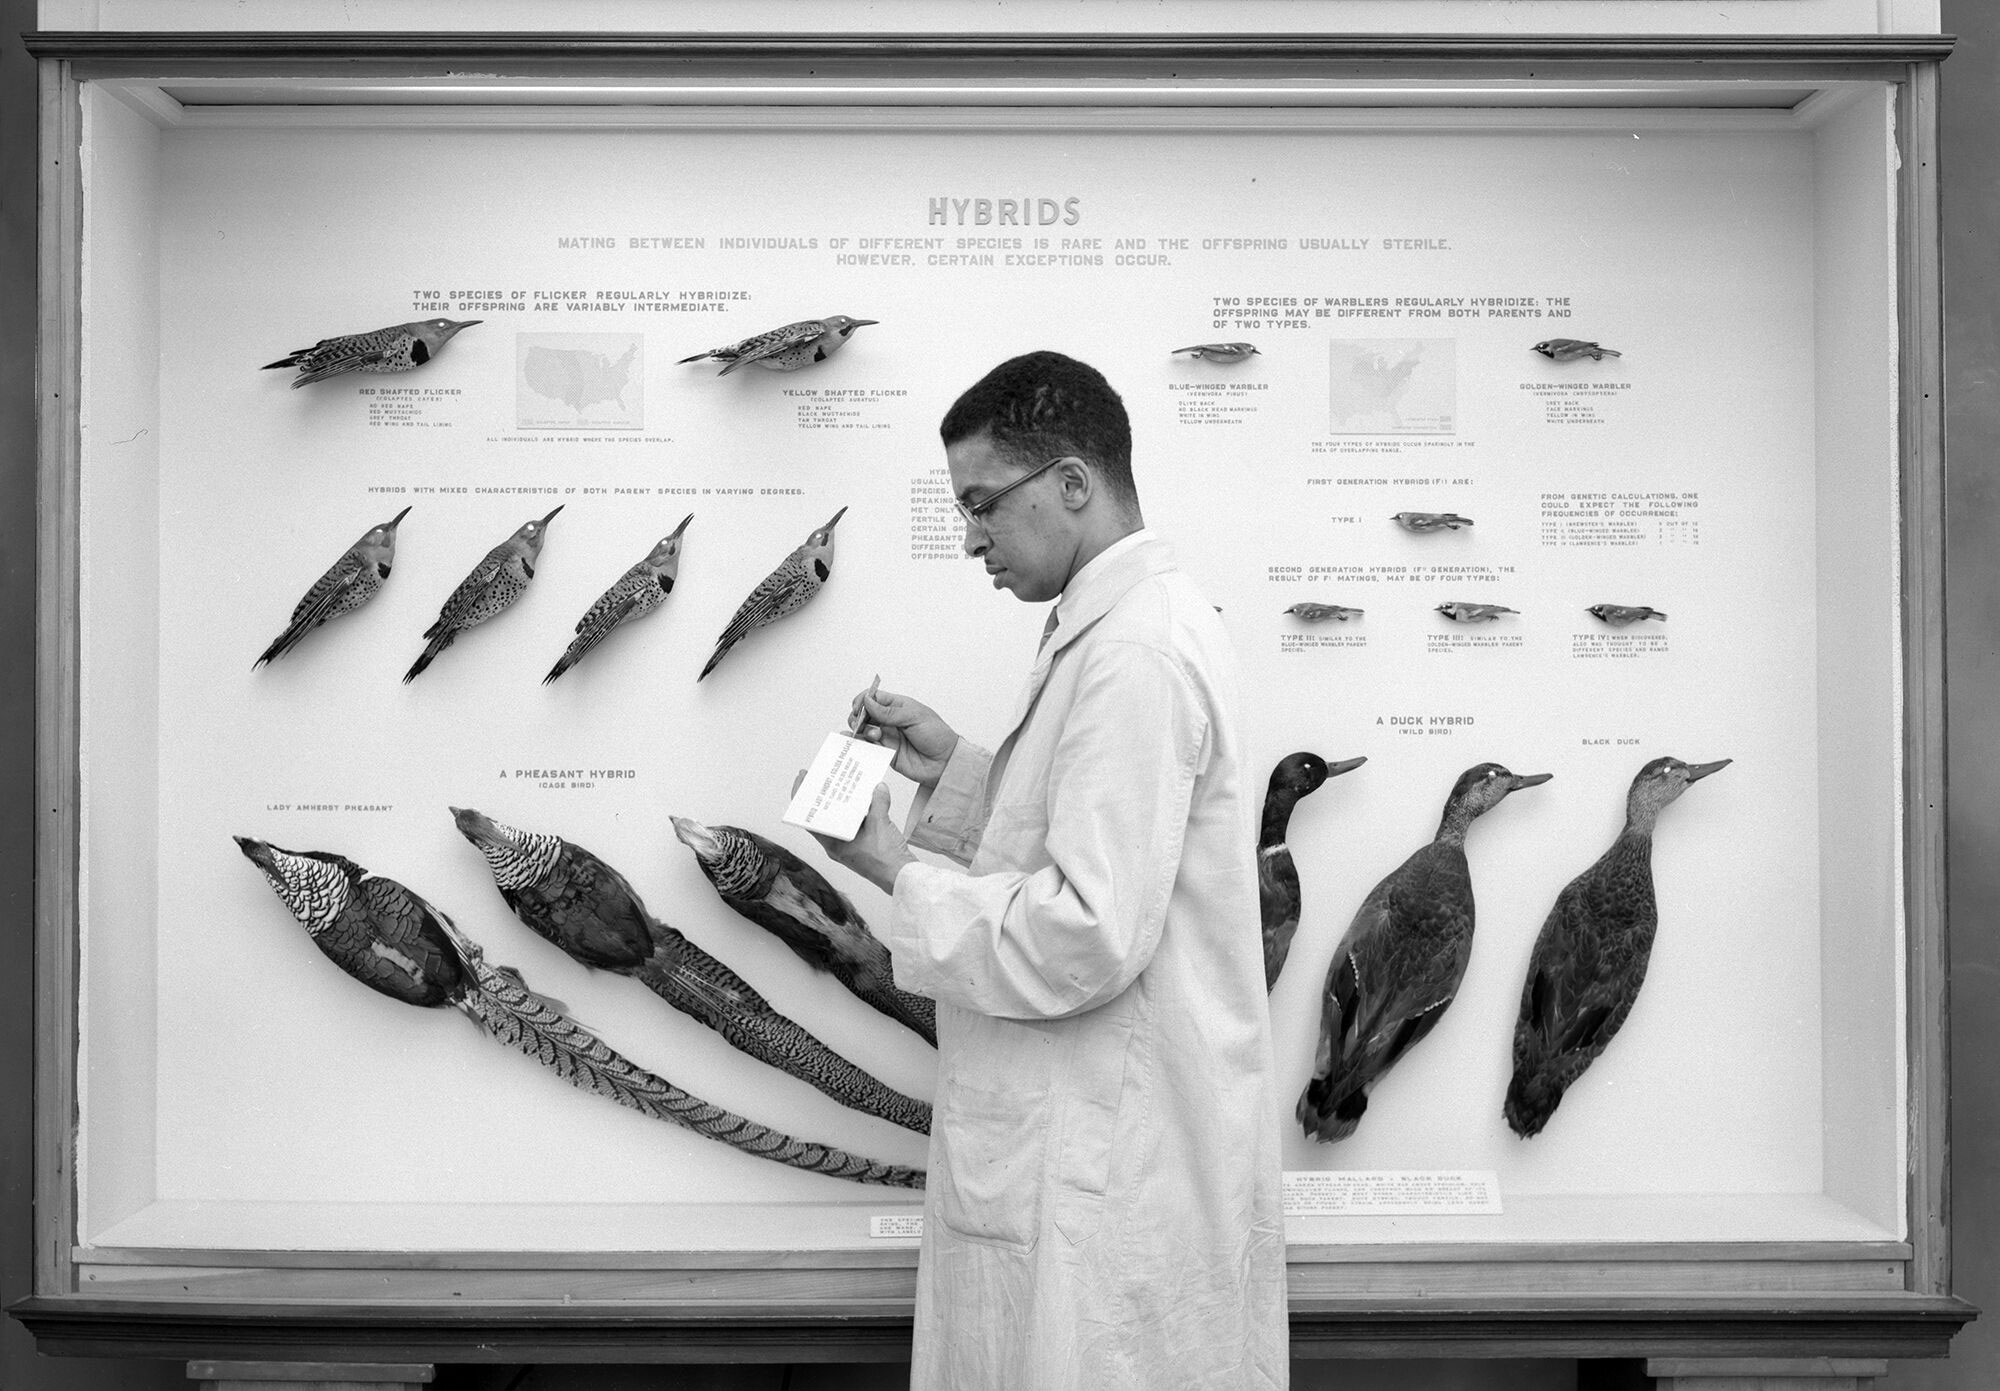 Carl Cotton, wearing a lab coat, stands in front of a display of bird specimens. He looks down at a card he's holding in his hand.